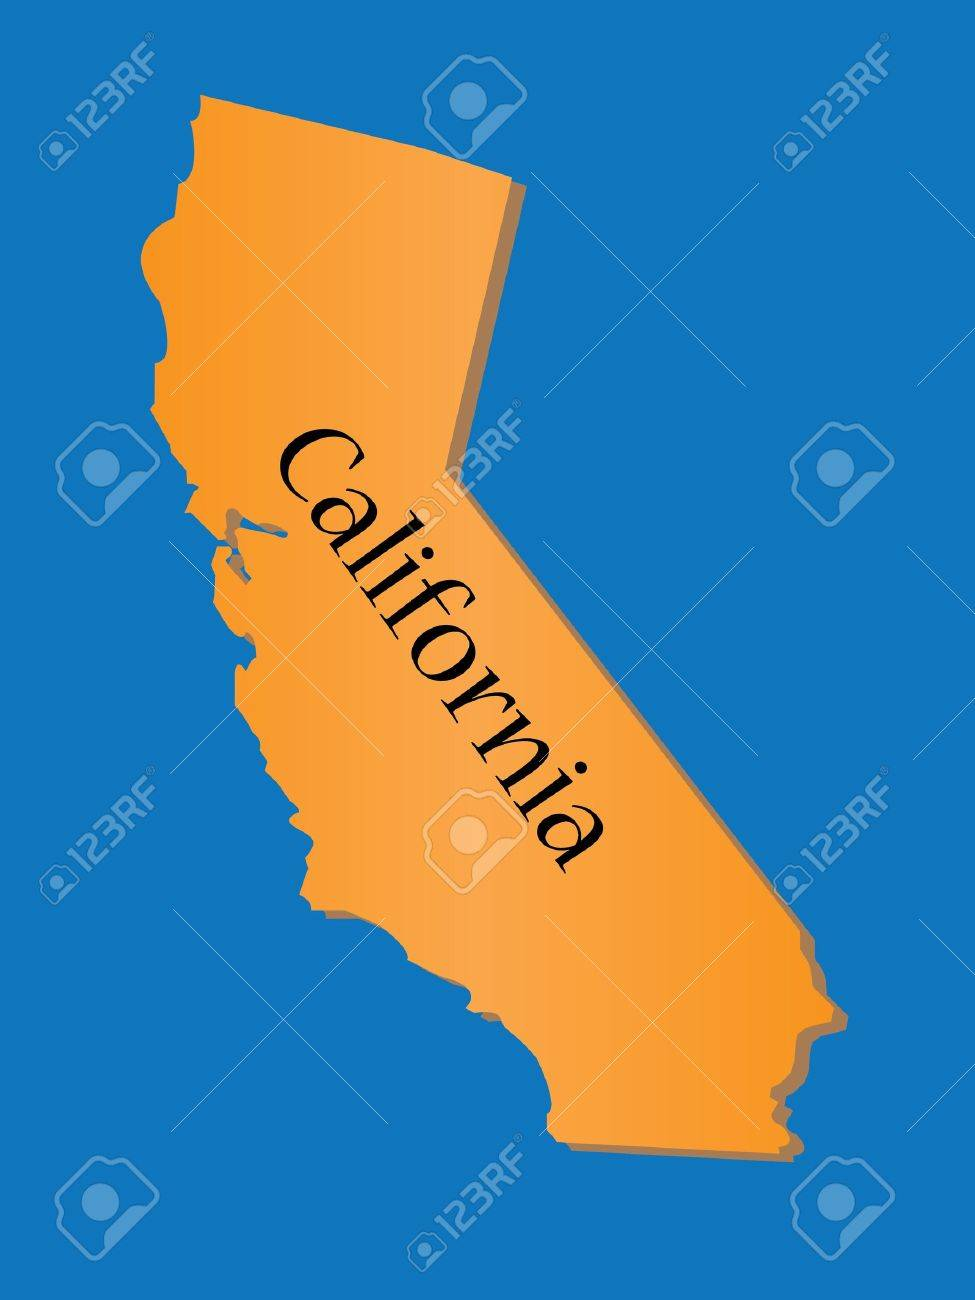 California State Map Royalty Free Cliparts Vectors And Stock - California state map